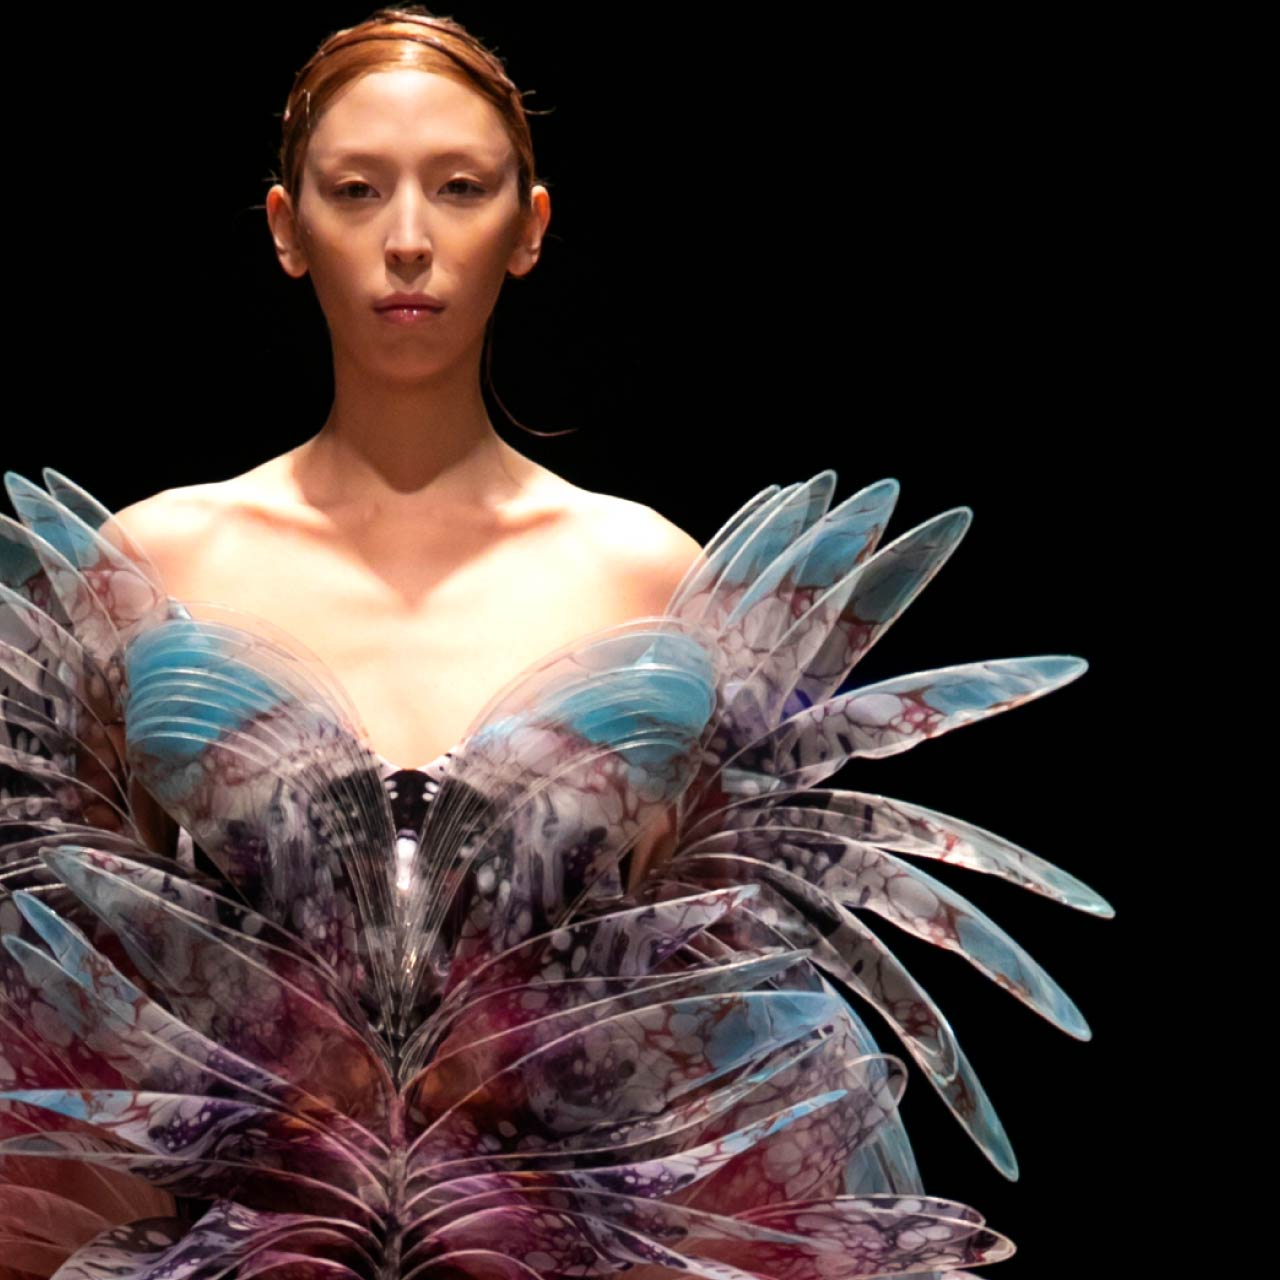 Contemporary Couture Techniques at Iris van Herpen | The Cutting Class. Spring-Summer 2020 Haute Couture.